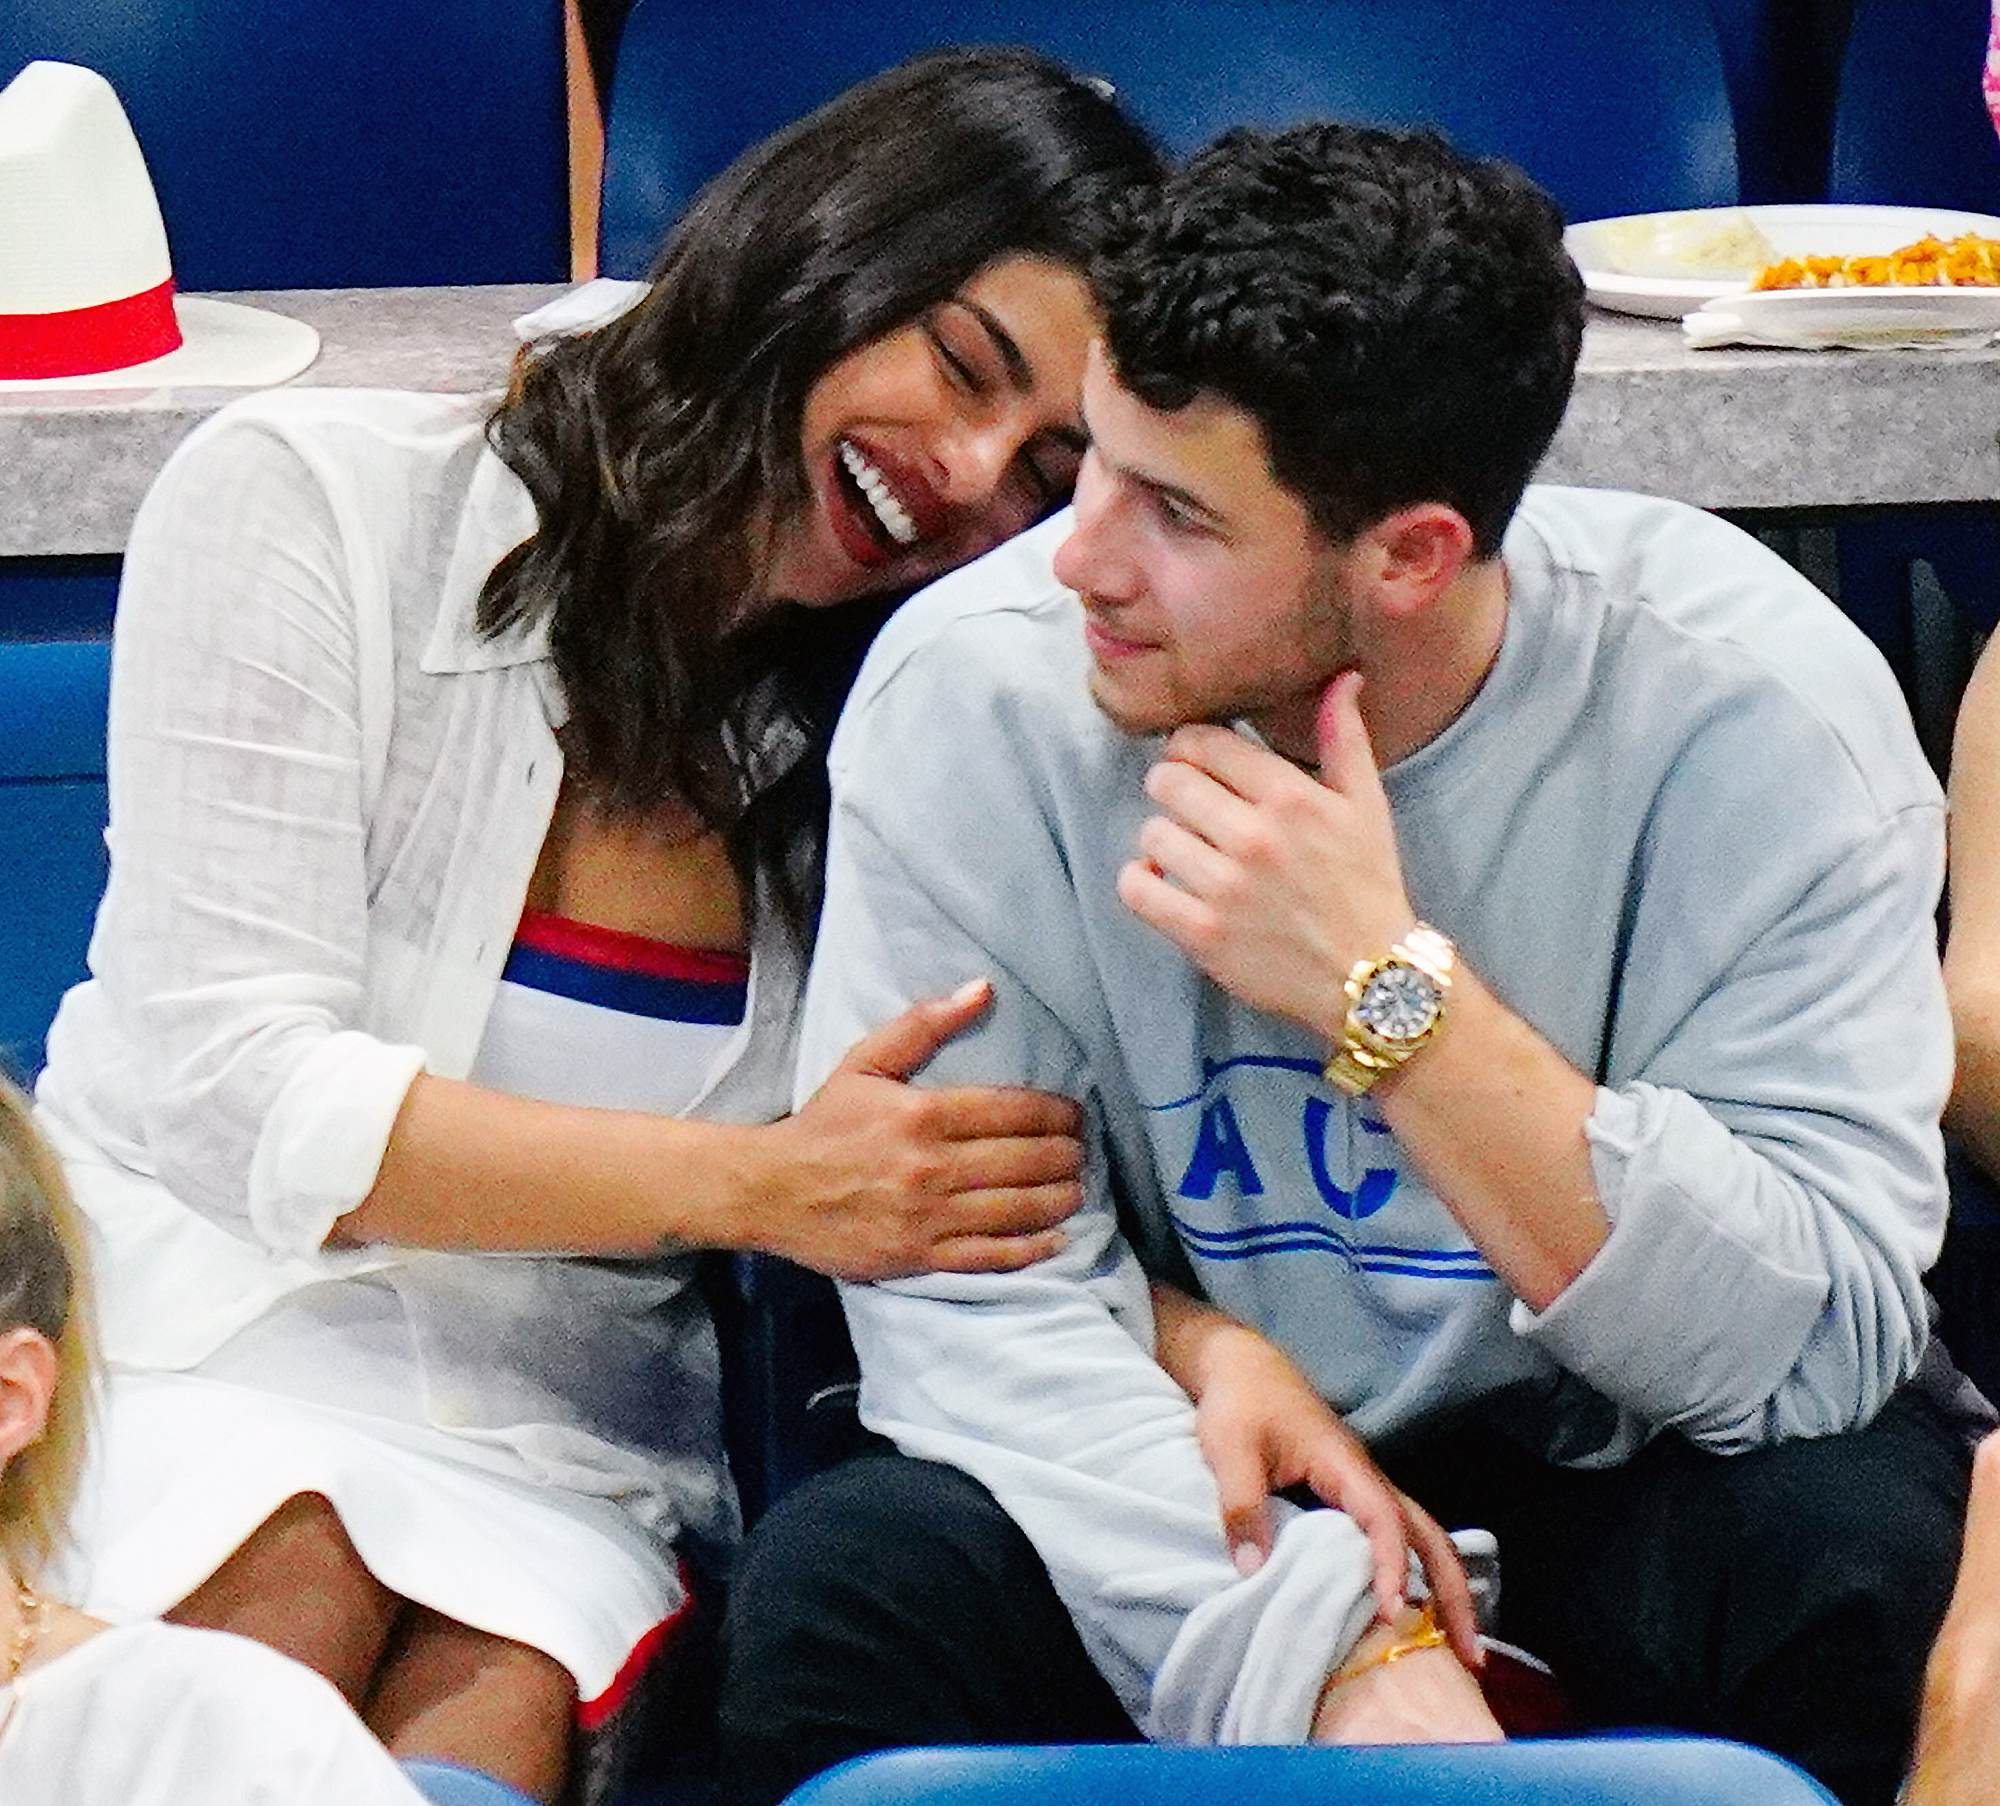 Nick Jonas Priyanka Chopra Us Open 2018 - The couple — who got engaged in July after two months of dating — shared a heartwarming moment as the Quantico alum cuddled up to her fiancé on September 4.